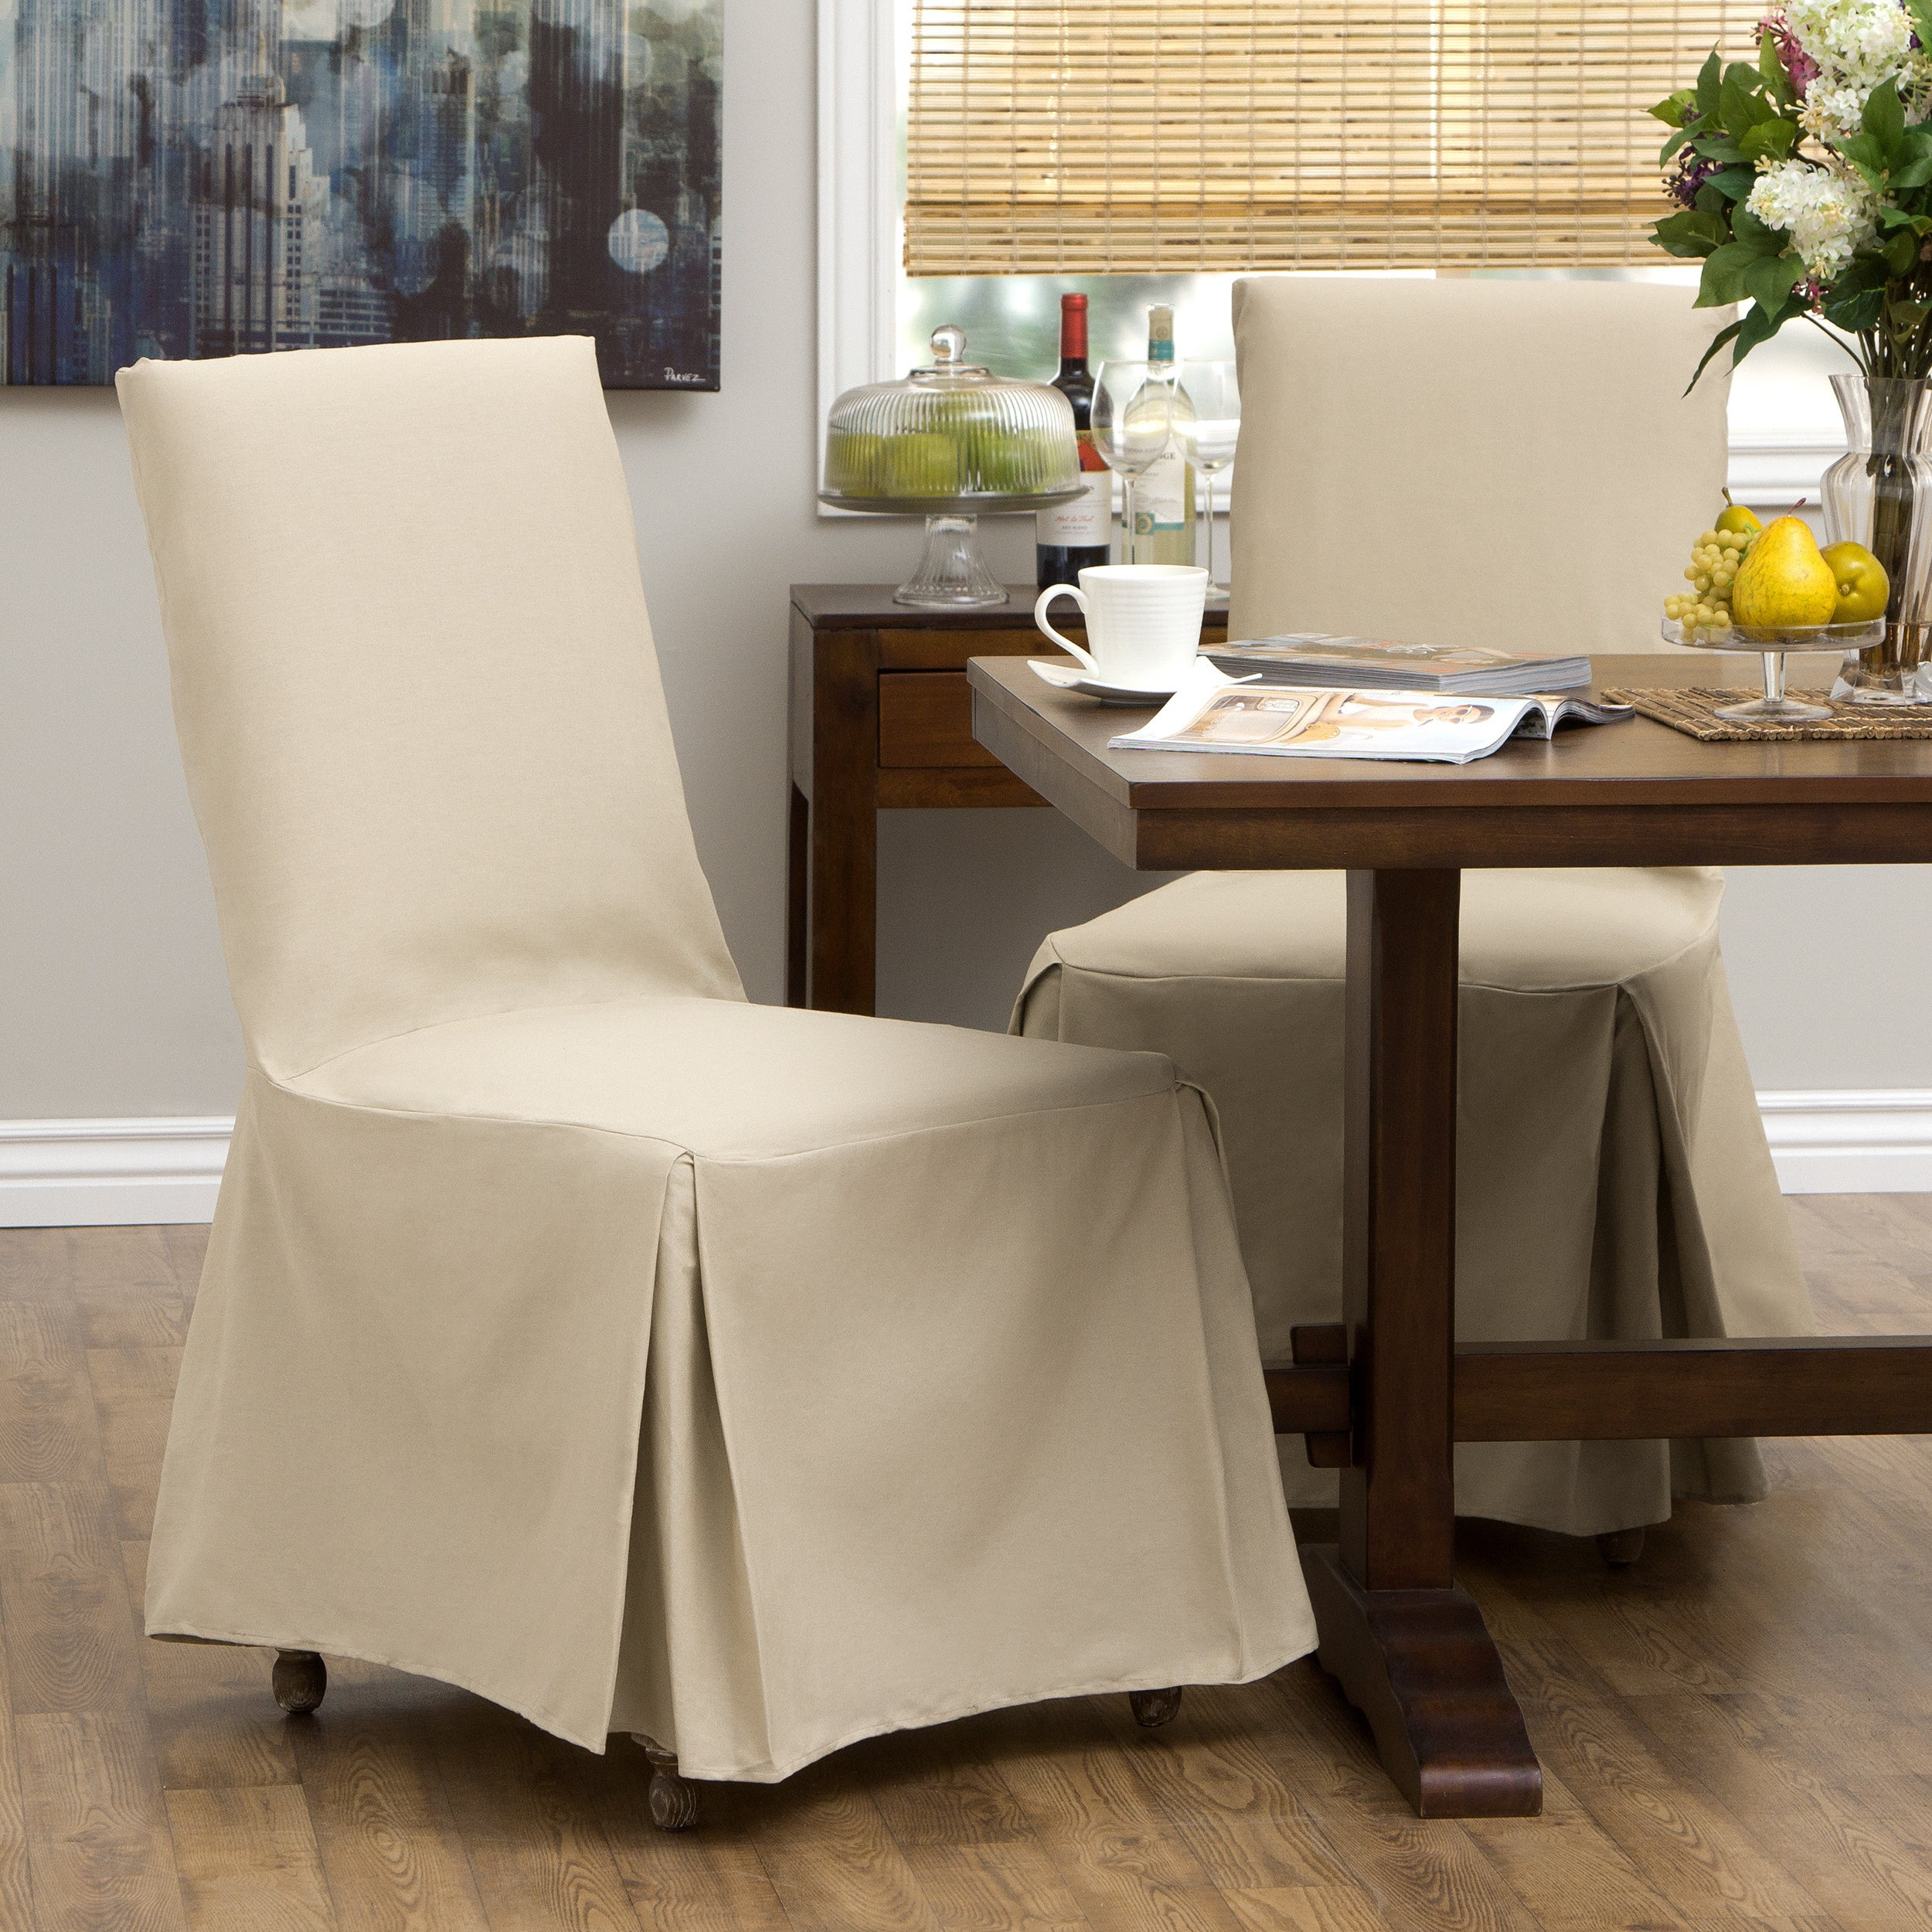 Shop classic slipcovers cotton duck parsons chair slipcover pair free shipping on orders over 45 overstock com 2442829